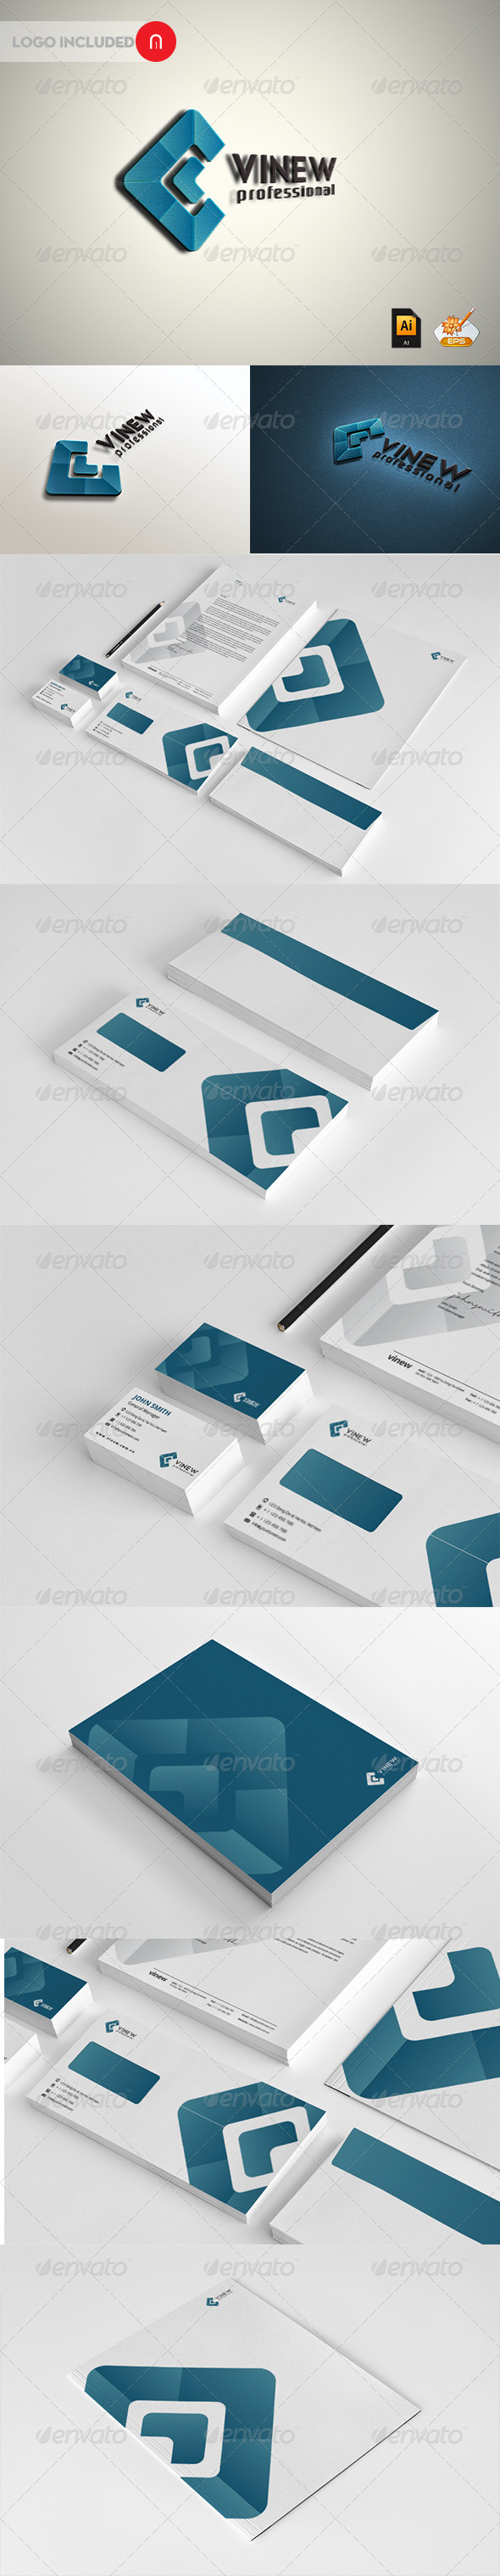 Stationary & Identity - Vinew - Stationery Print Templates